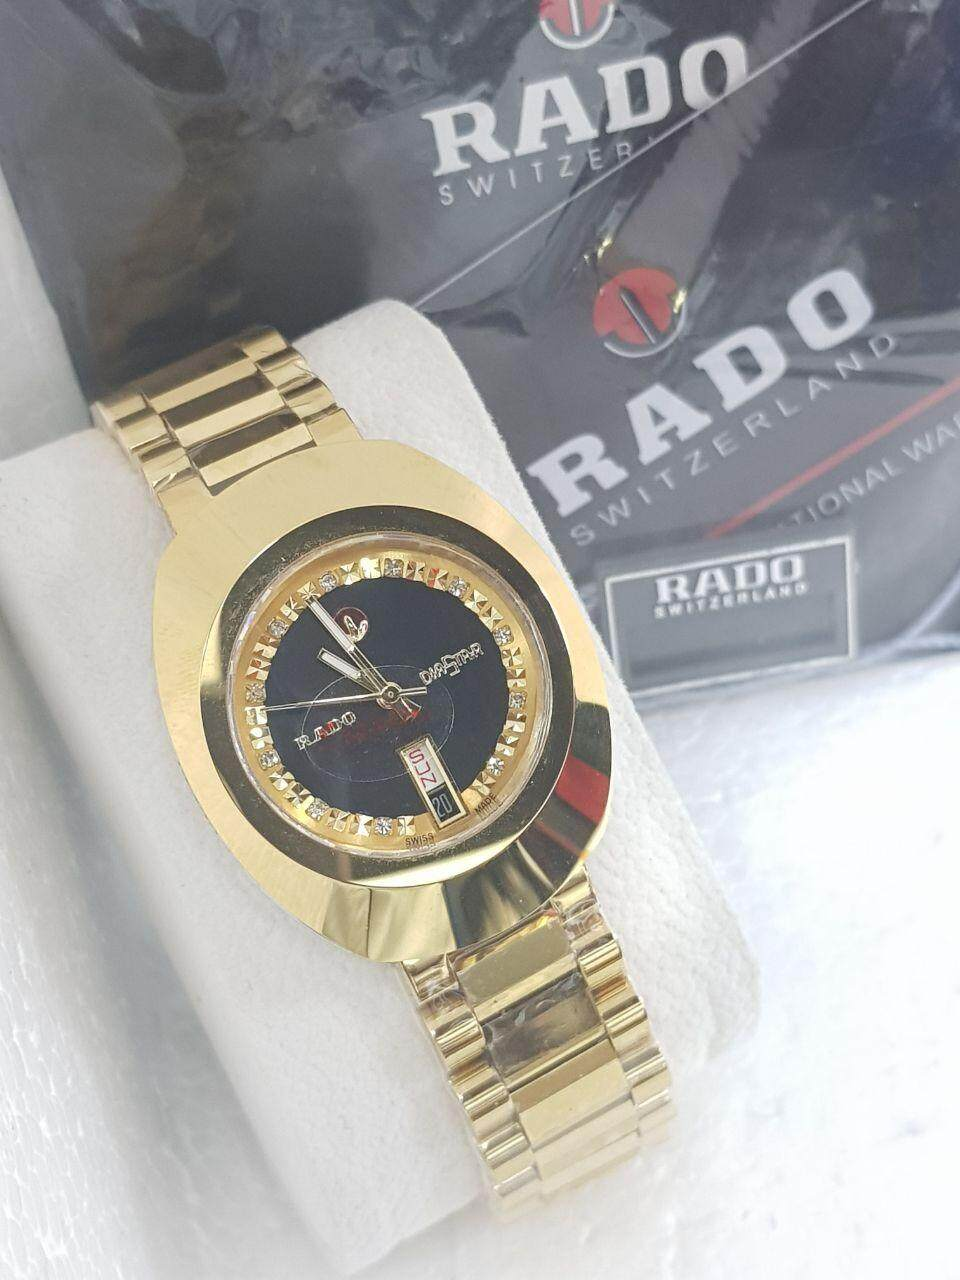 Rado_Sapphire Glass watch For Men (Limited Edition) Special Price